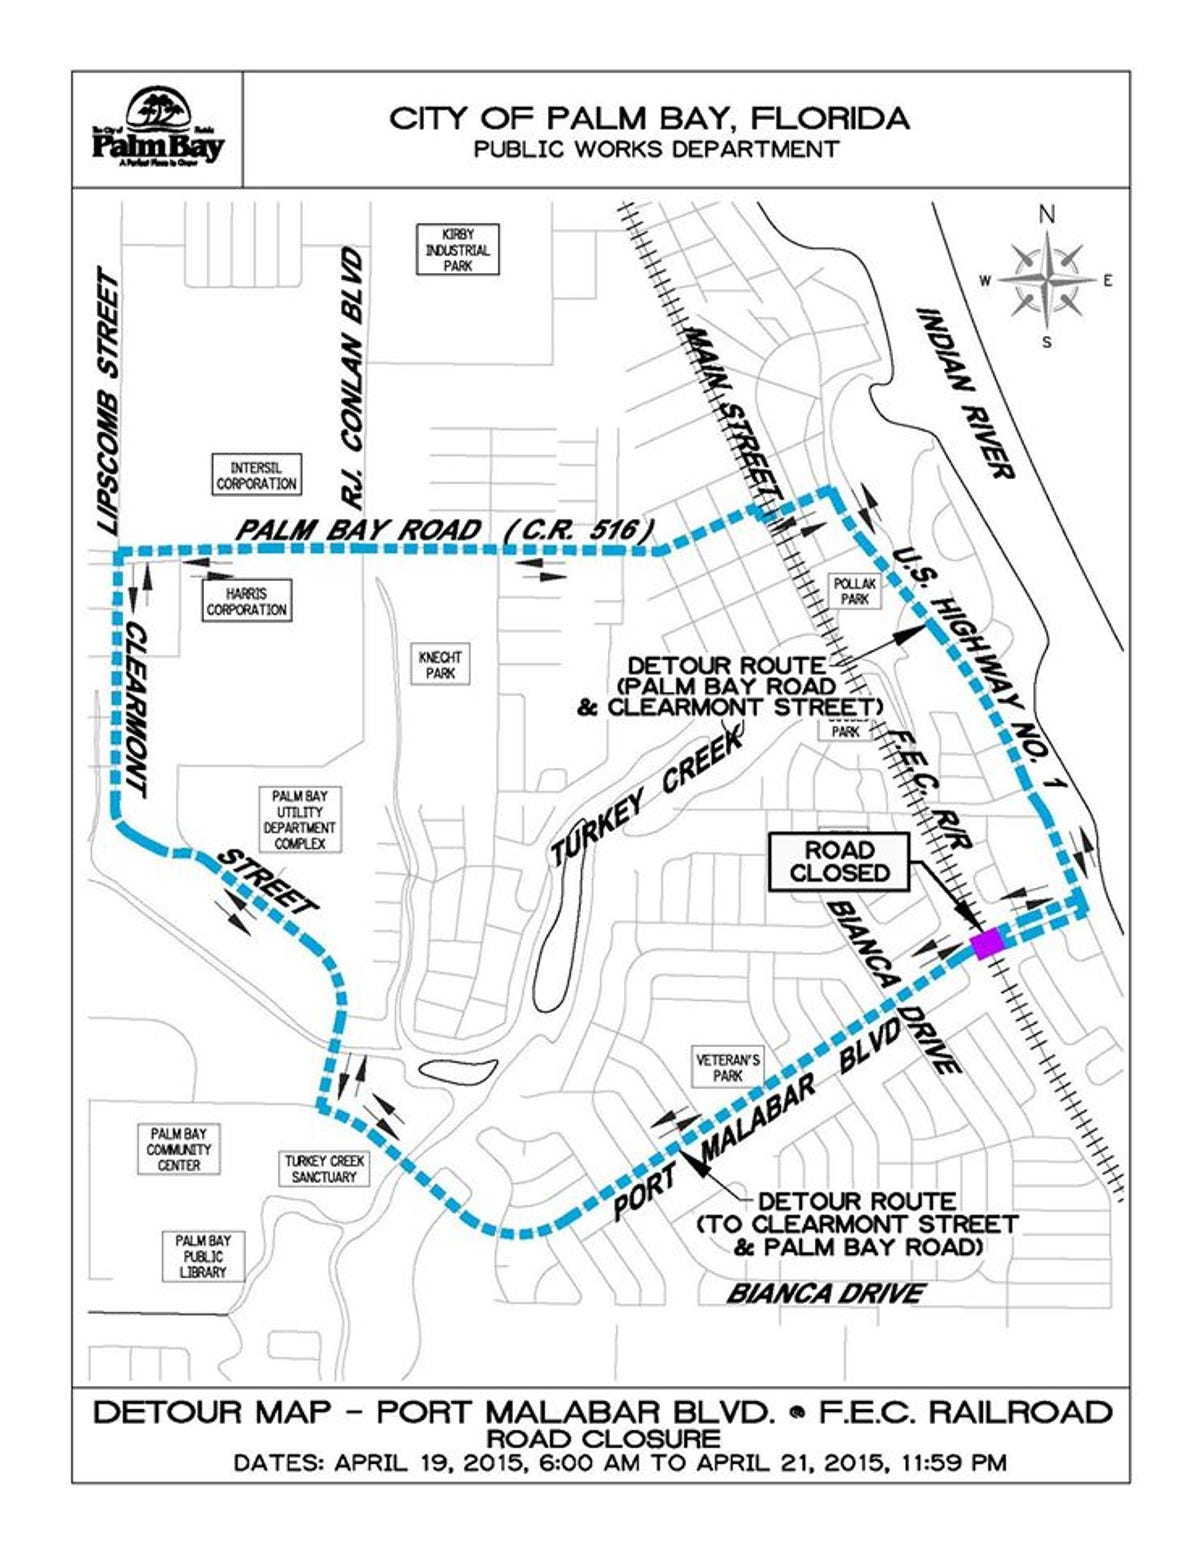 Florida Road Map 2015.Port Malabar Blvd To Be Partially Closed Sun Tues